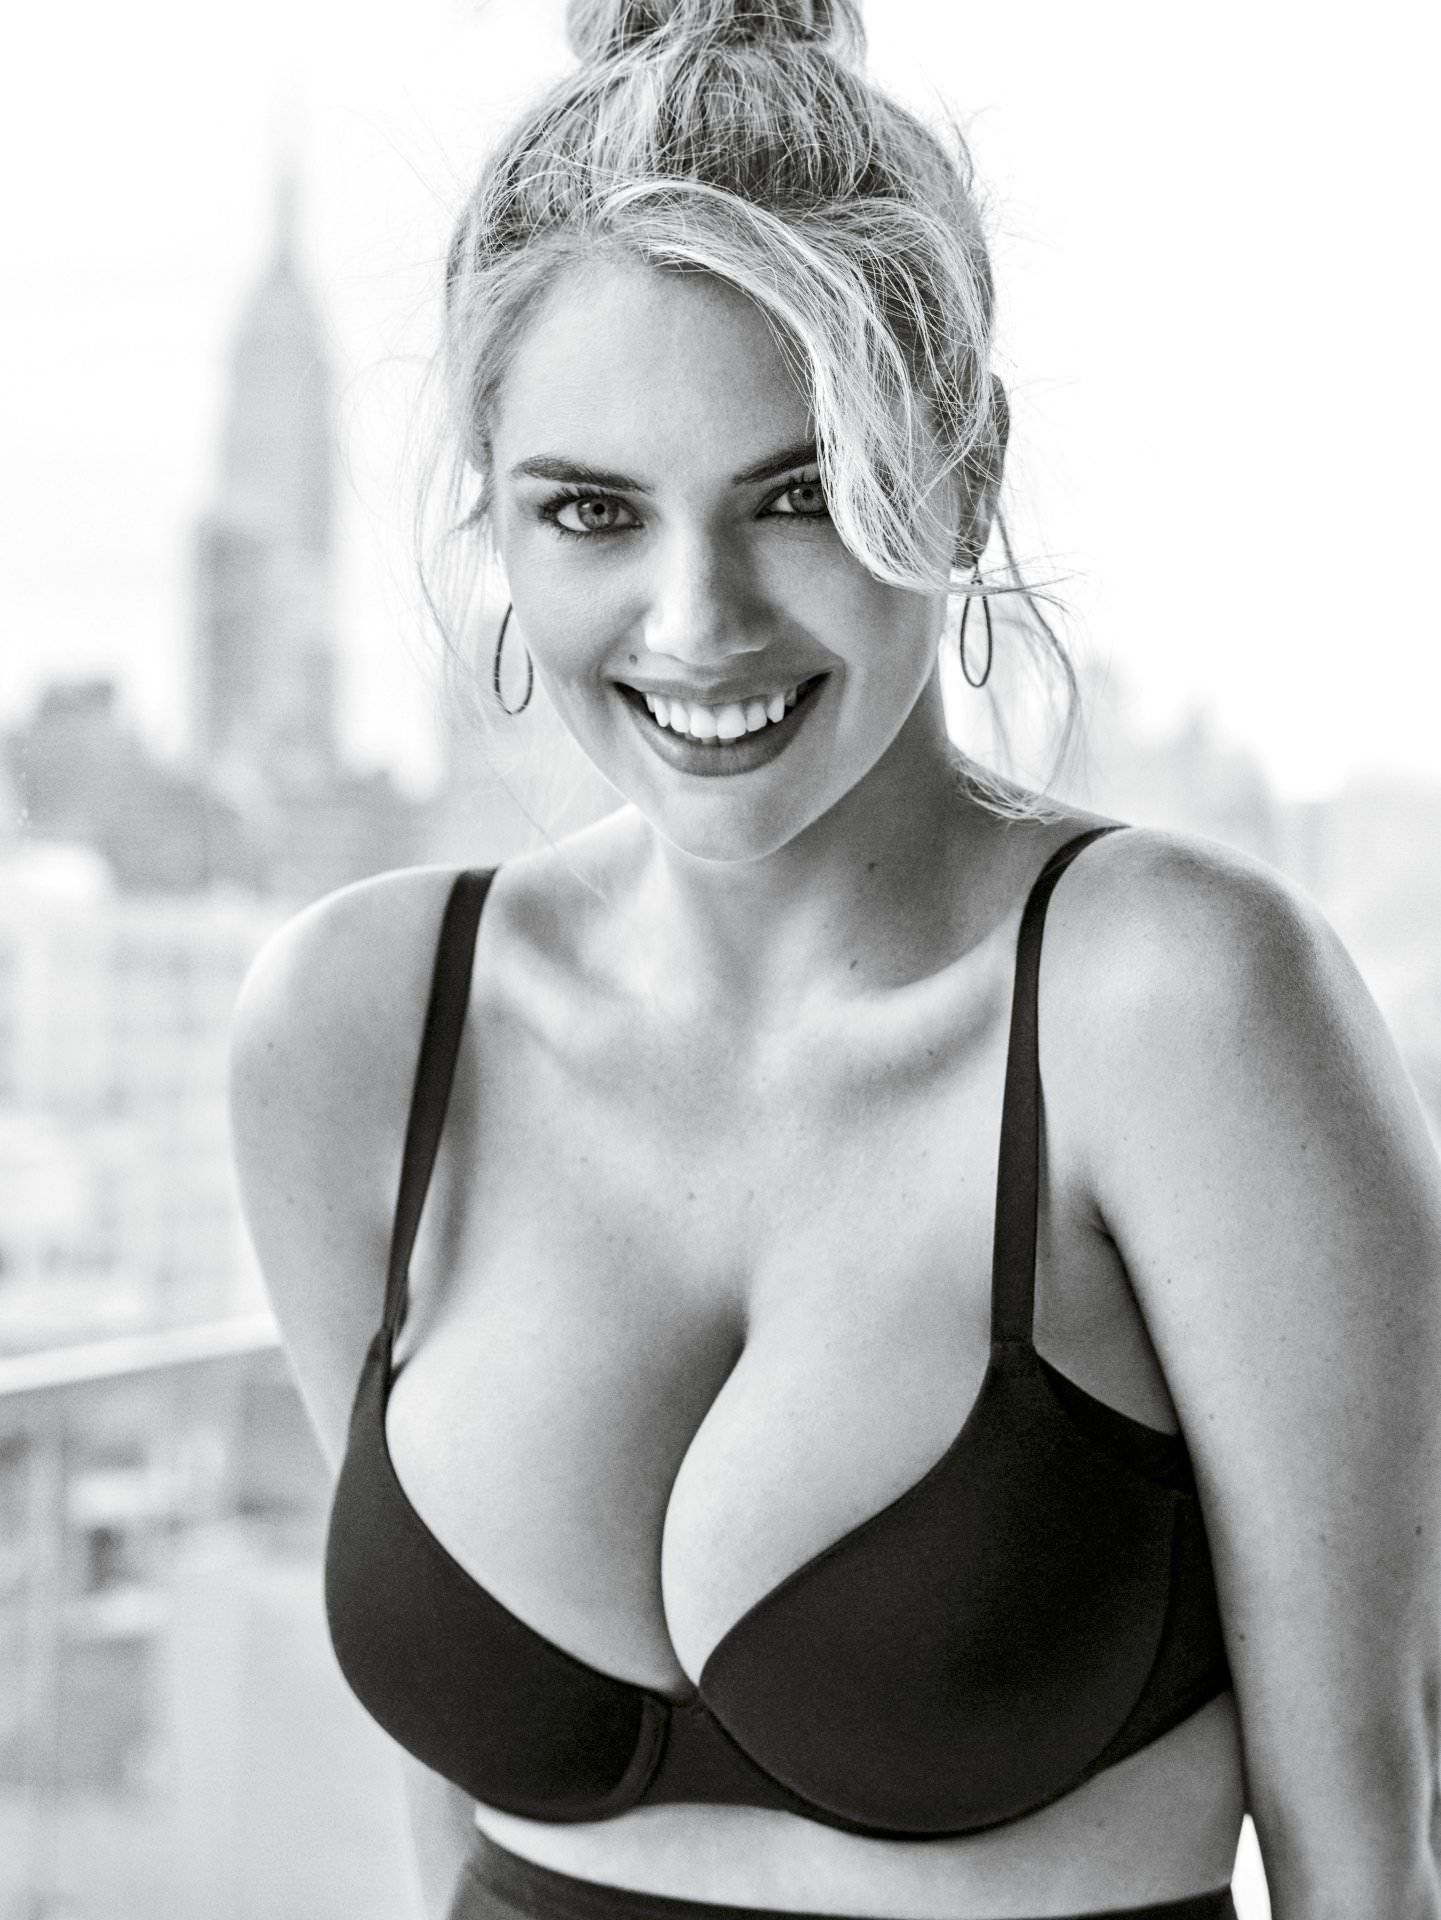 Boobs Cleavage Kate Upton naked photo 2017